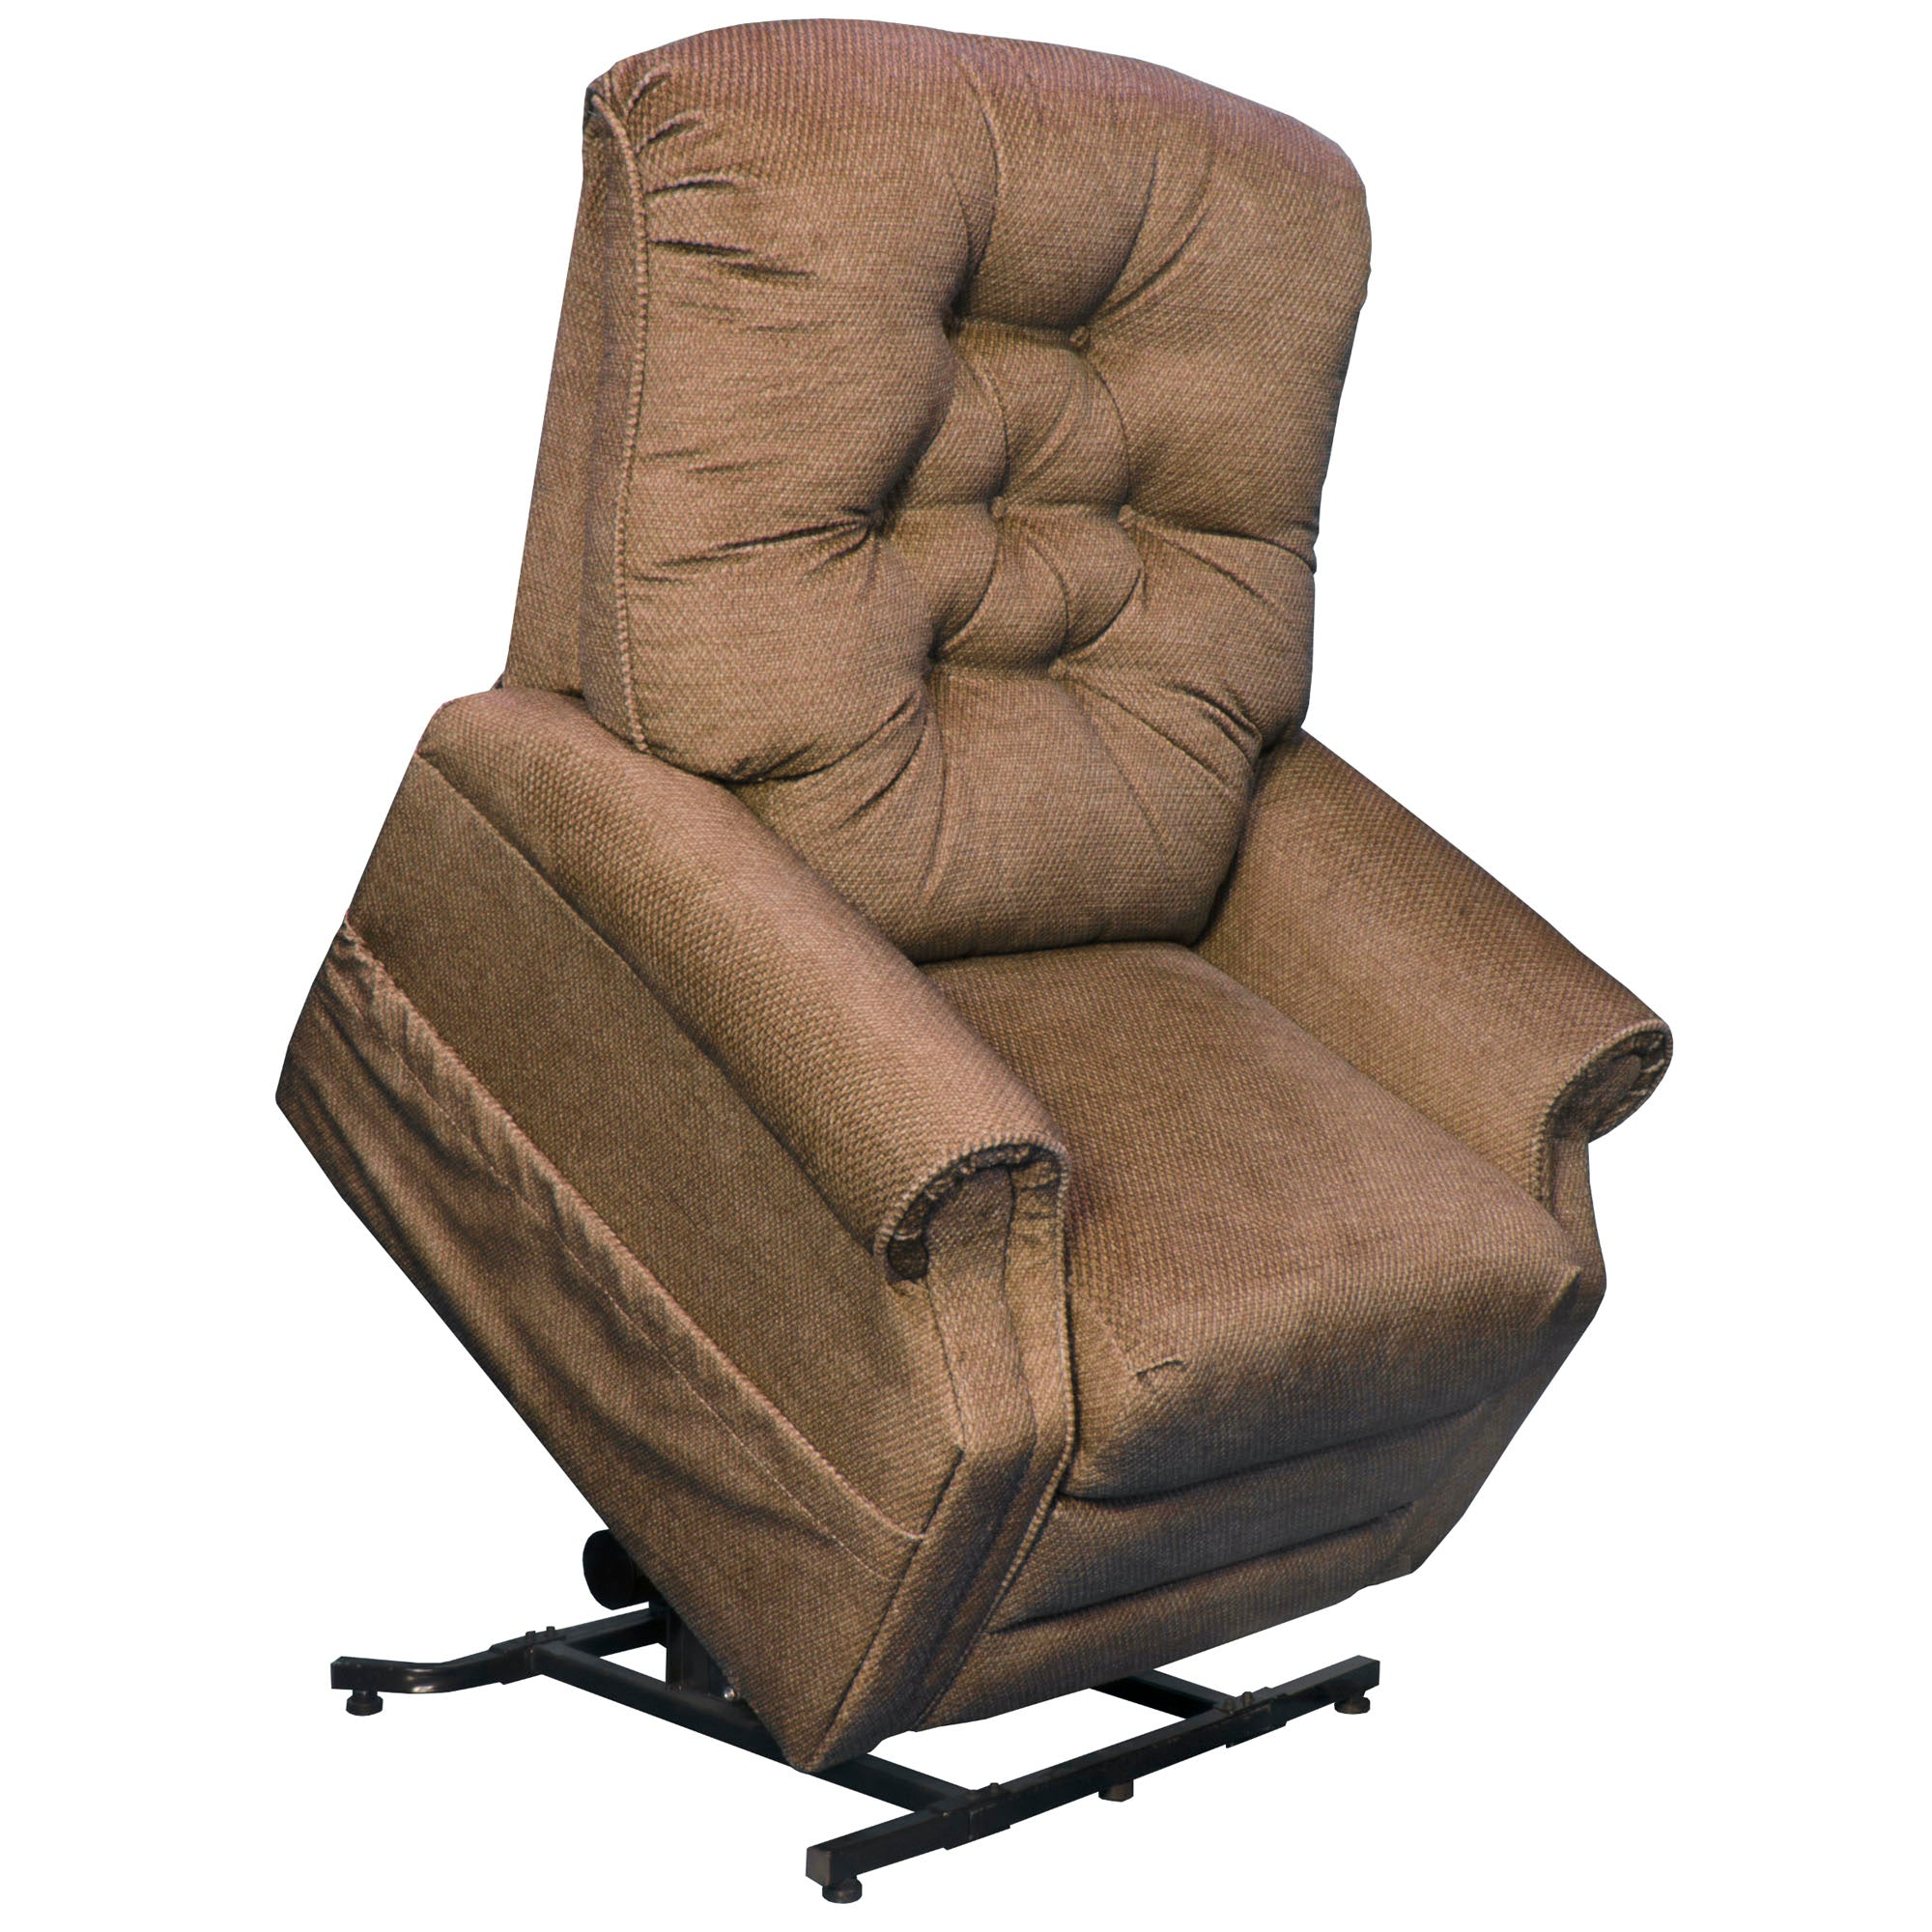 Remarkable Patriot 4824 Power Lift Chair Recliner Forskolin Free Trial Chair Design Images Forskolin Free Trialorg